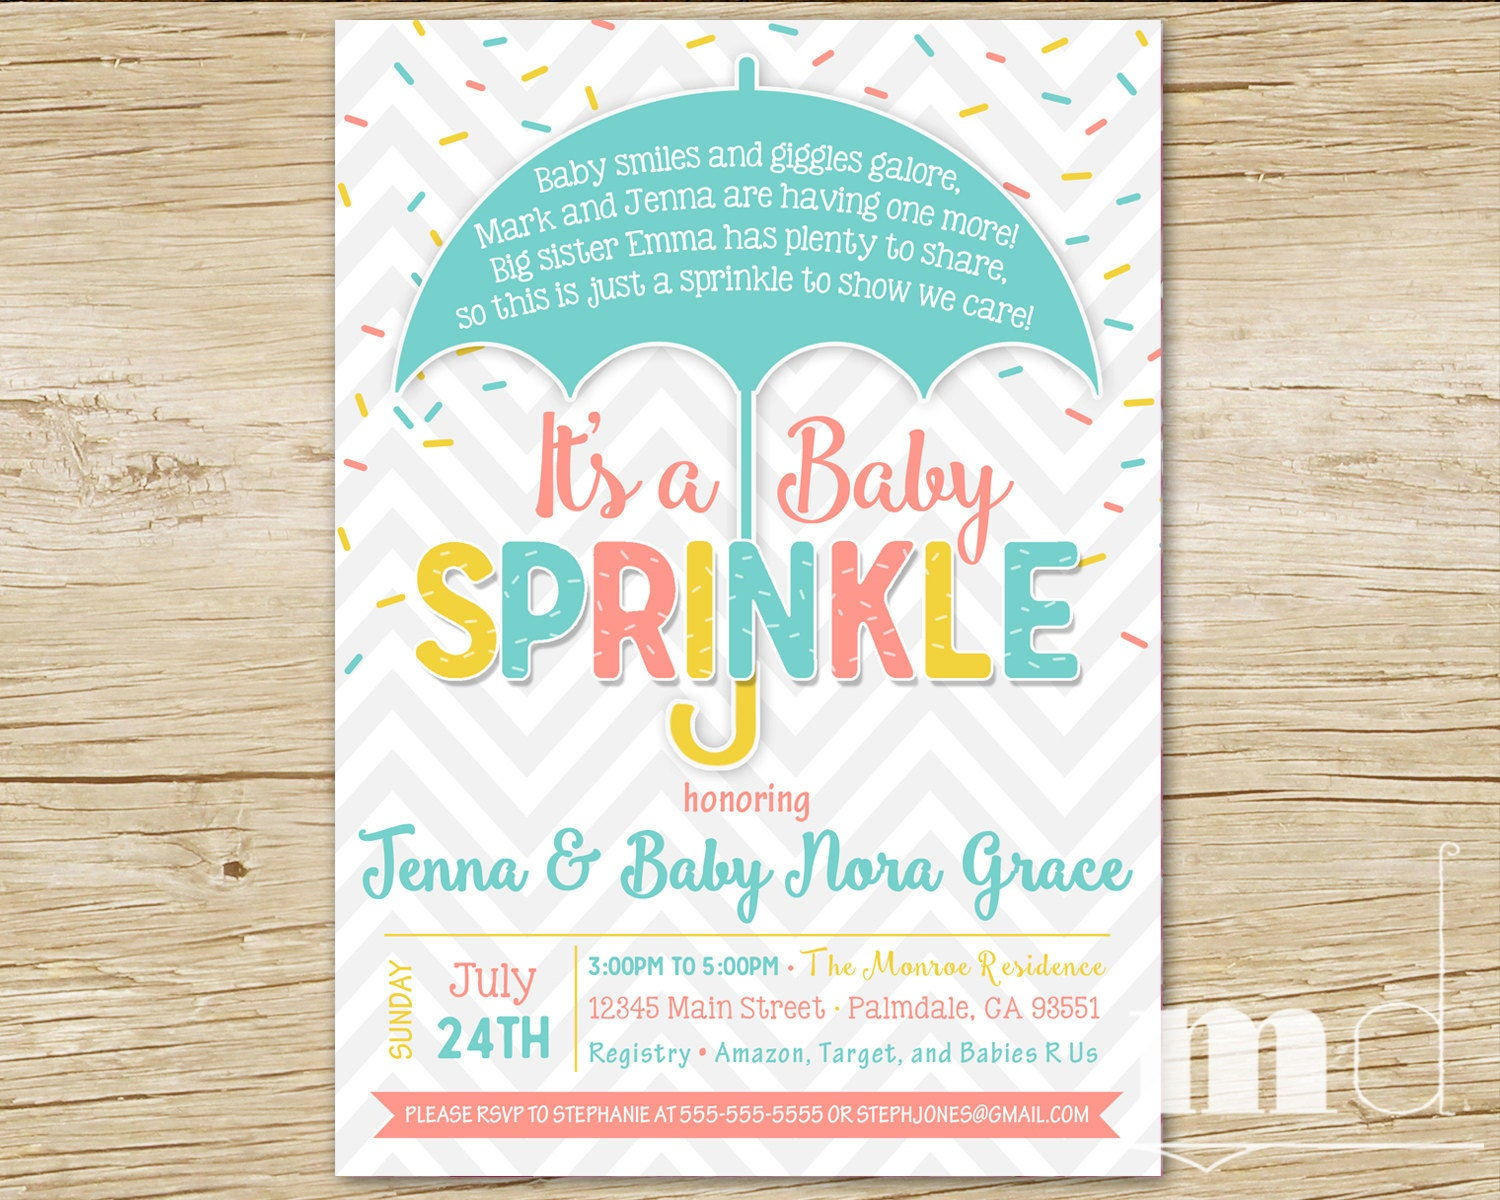 Baby Shower Sprinkle Images ~ Sprinkle baby shower invitation party